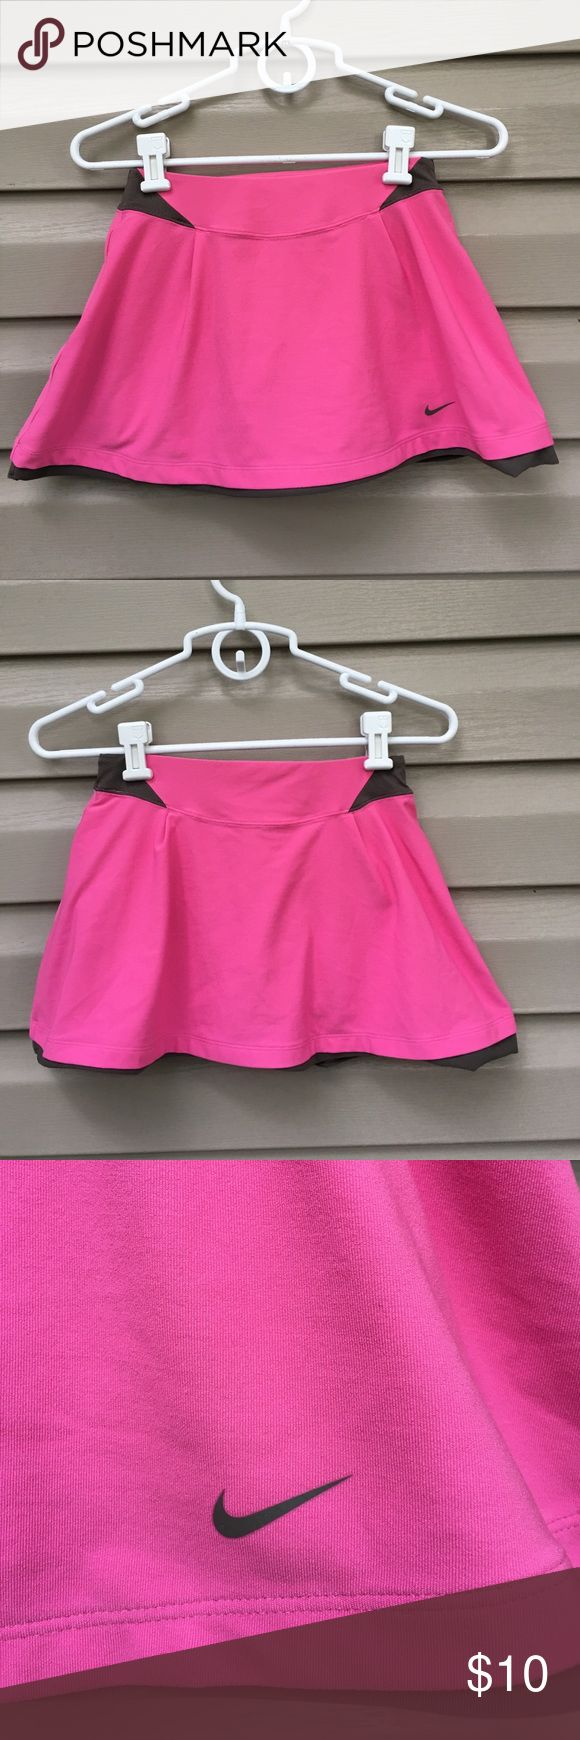 Nike women's pink/ brown tennis skirt Very nice women's dri-fit tennis skirt , shirts underneath, elastic waistband. 88% polyester 12% spandex. No snags stains or holes. ( matching top also available on this site in size Small) Nike Shorts Skorts